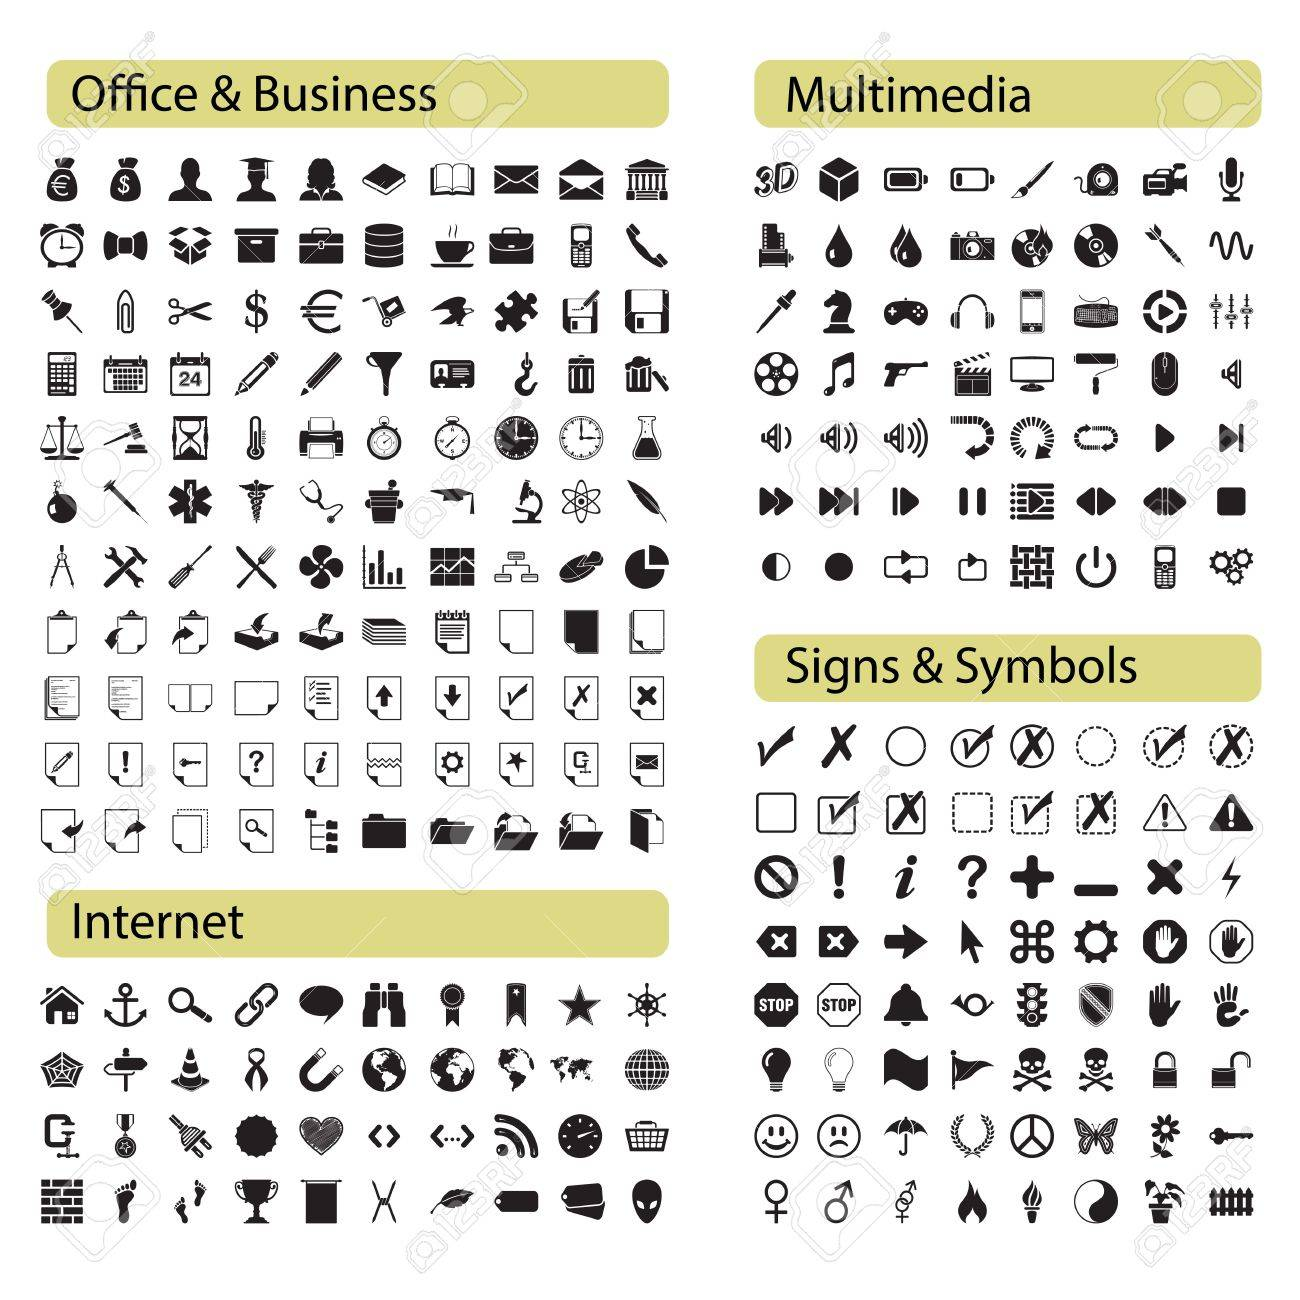 Professional icons set Office, Media, Internet and symbols Stock Vector - 20004539